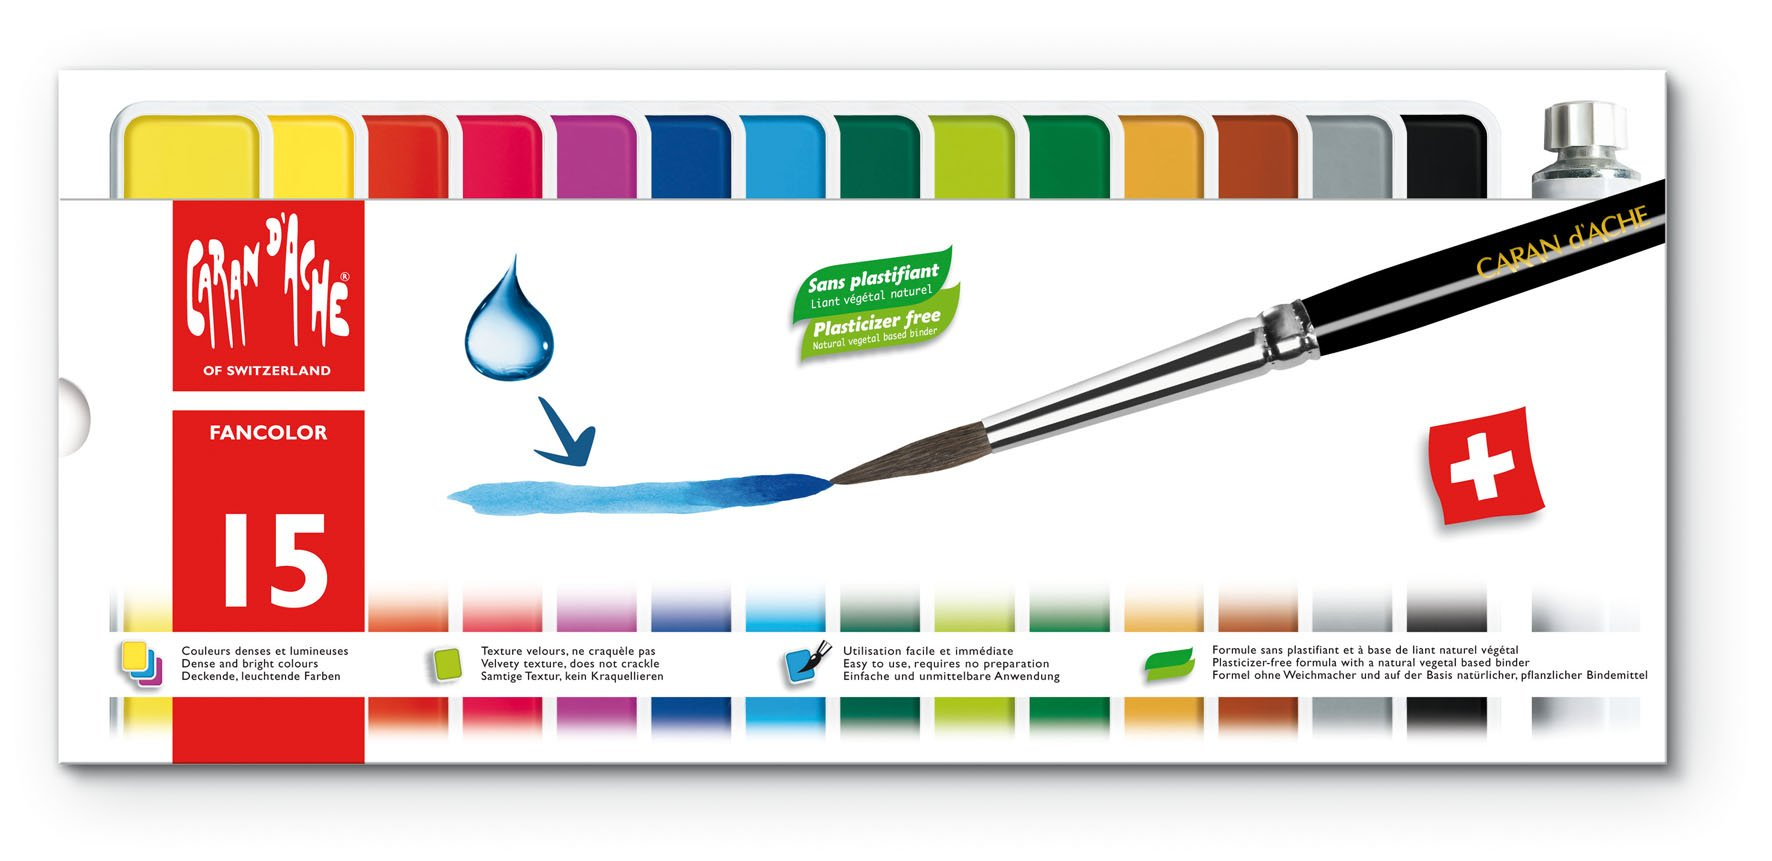 Caran d'Ache Fancolor Tempera, 15 Colors by Caran d'Ache (Image #1)